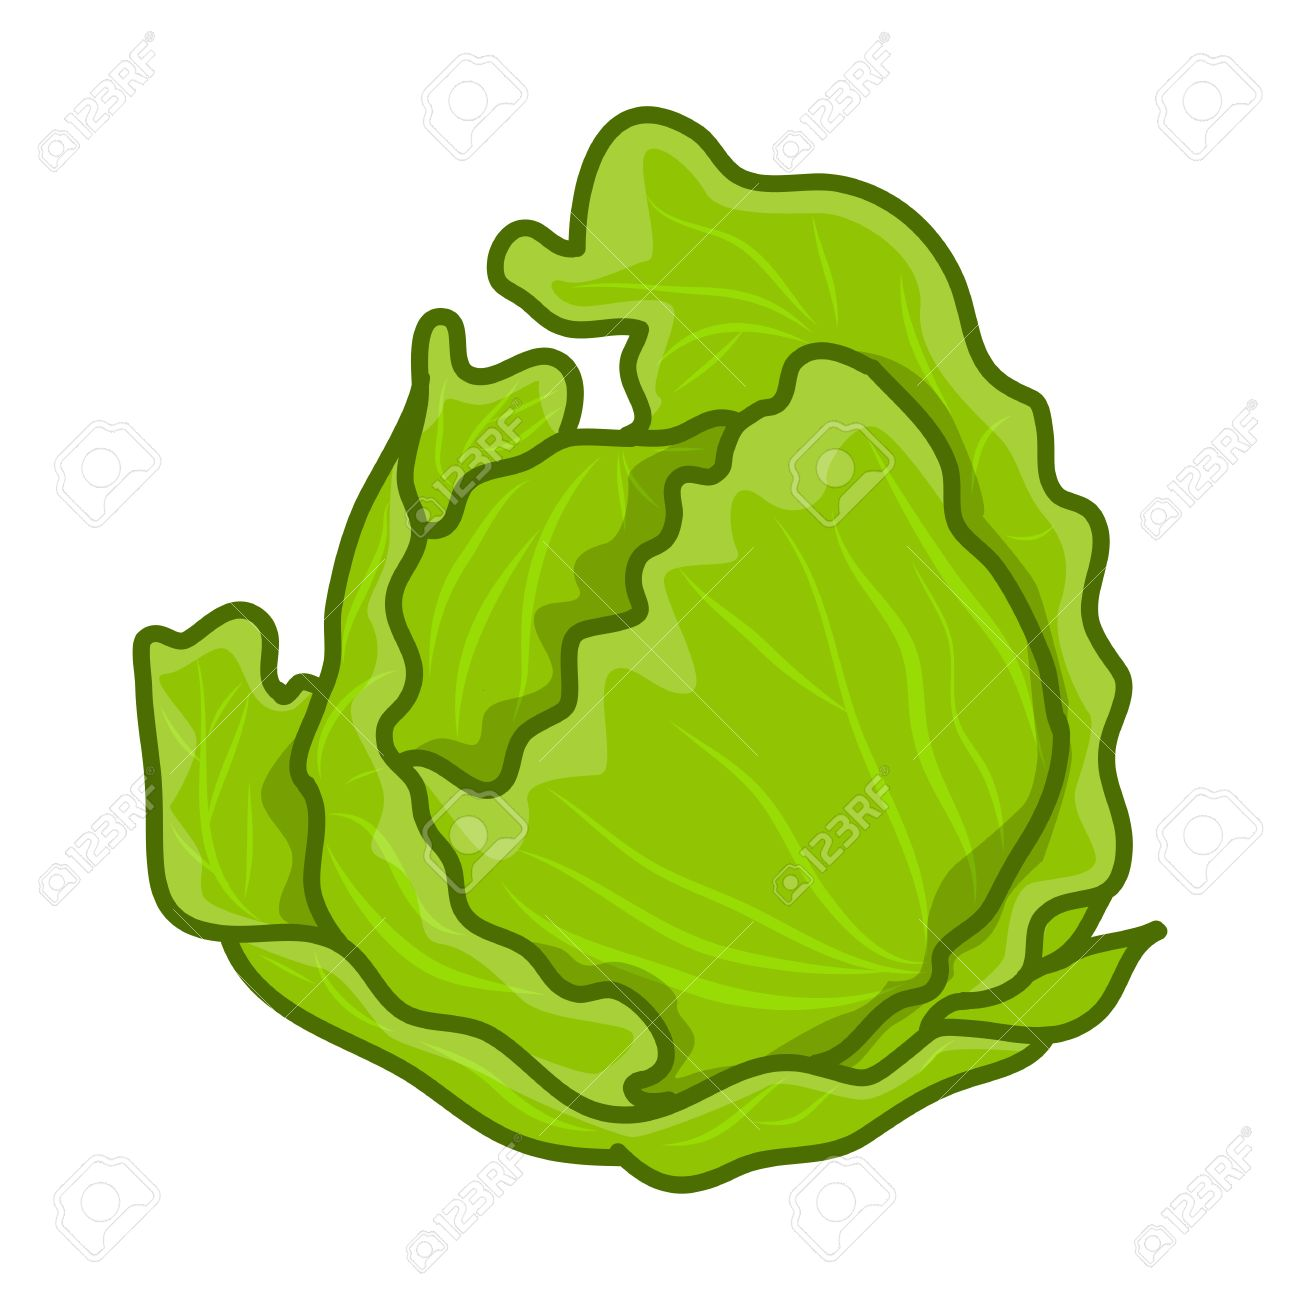 Image result for cabbage cartoon